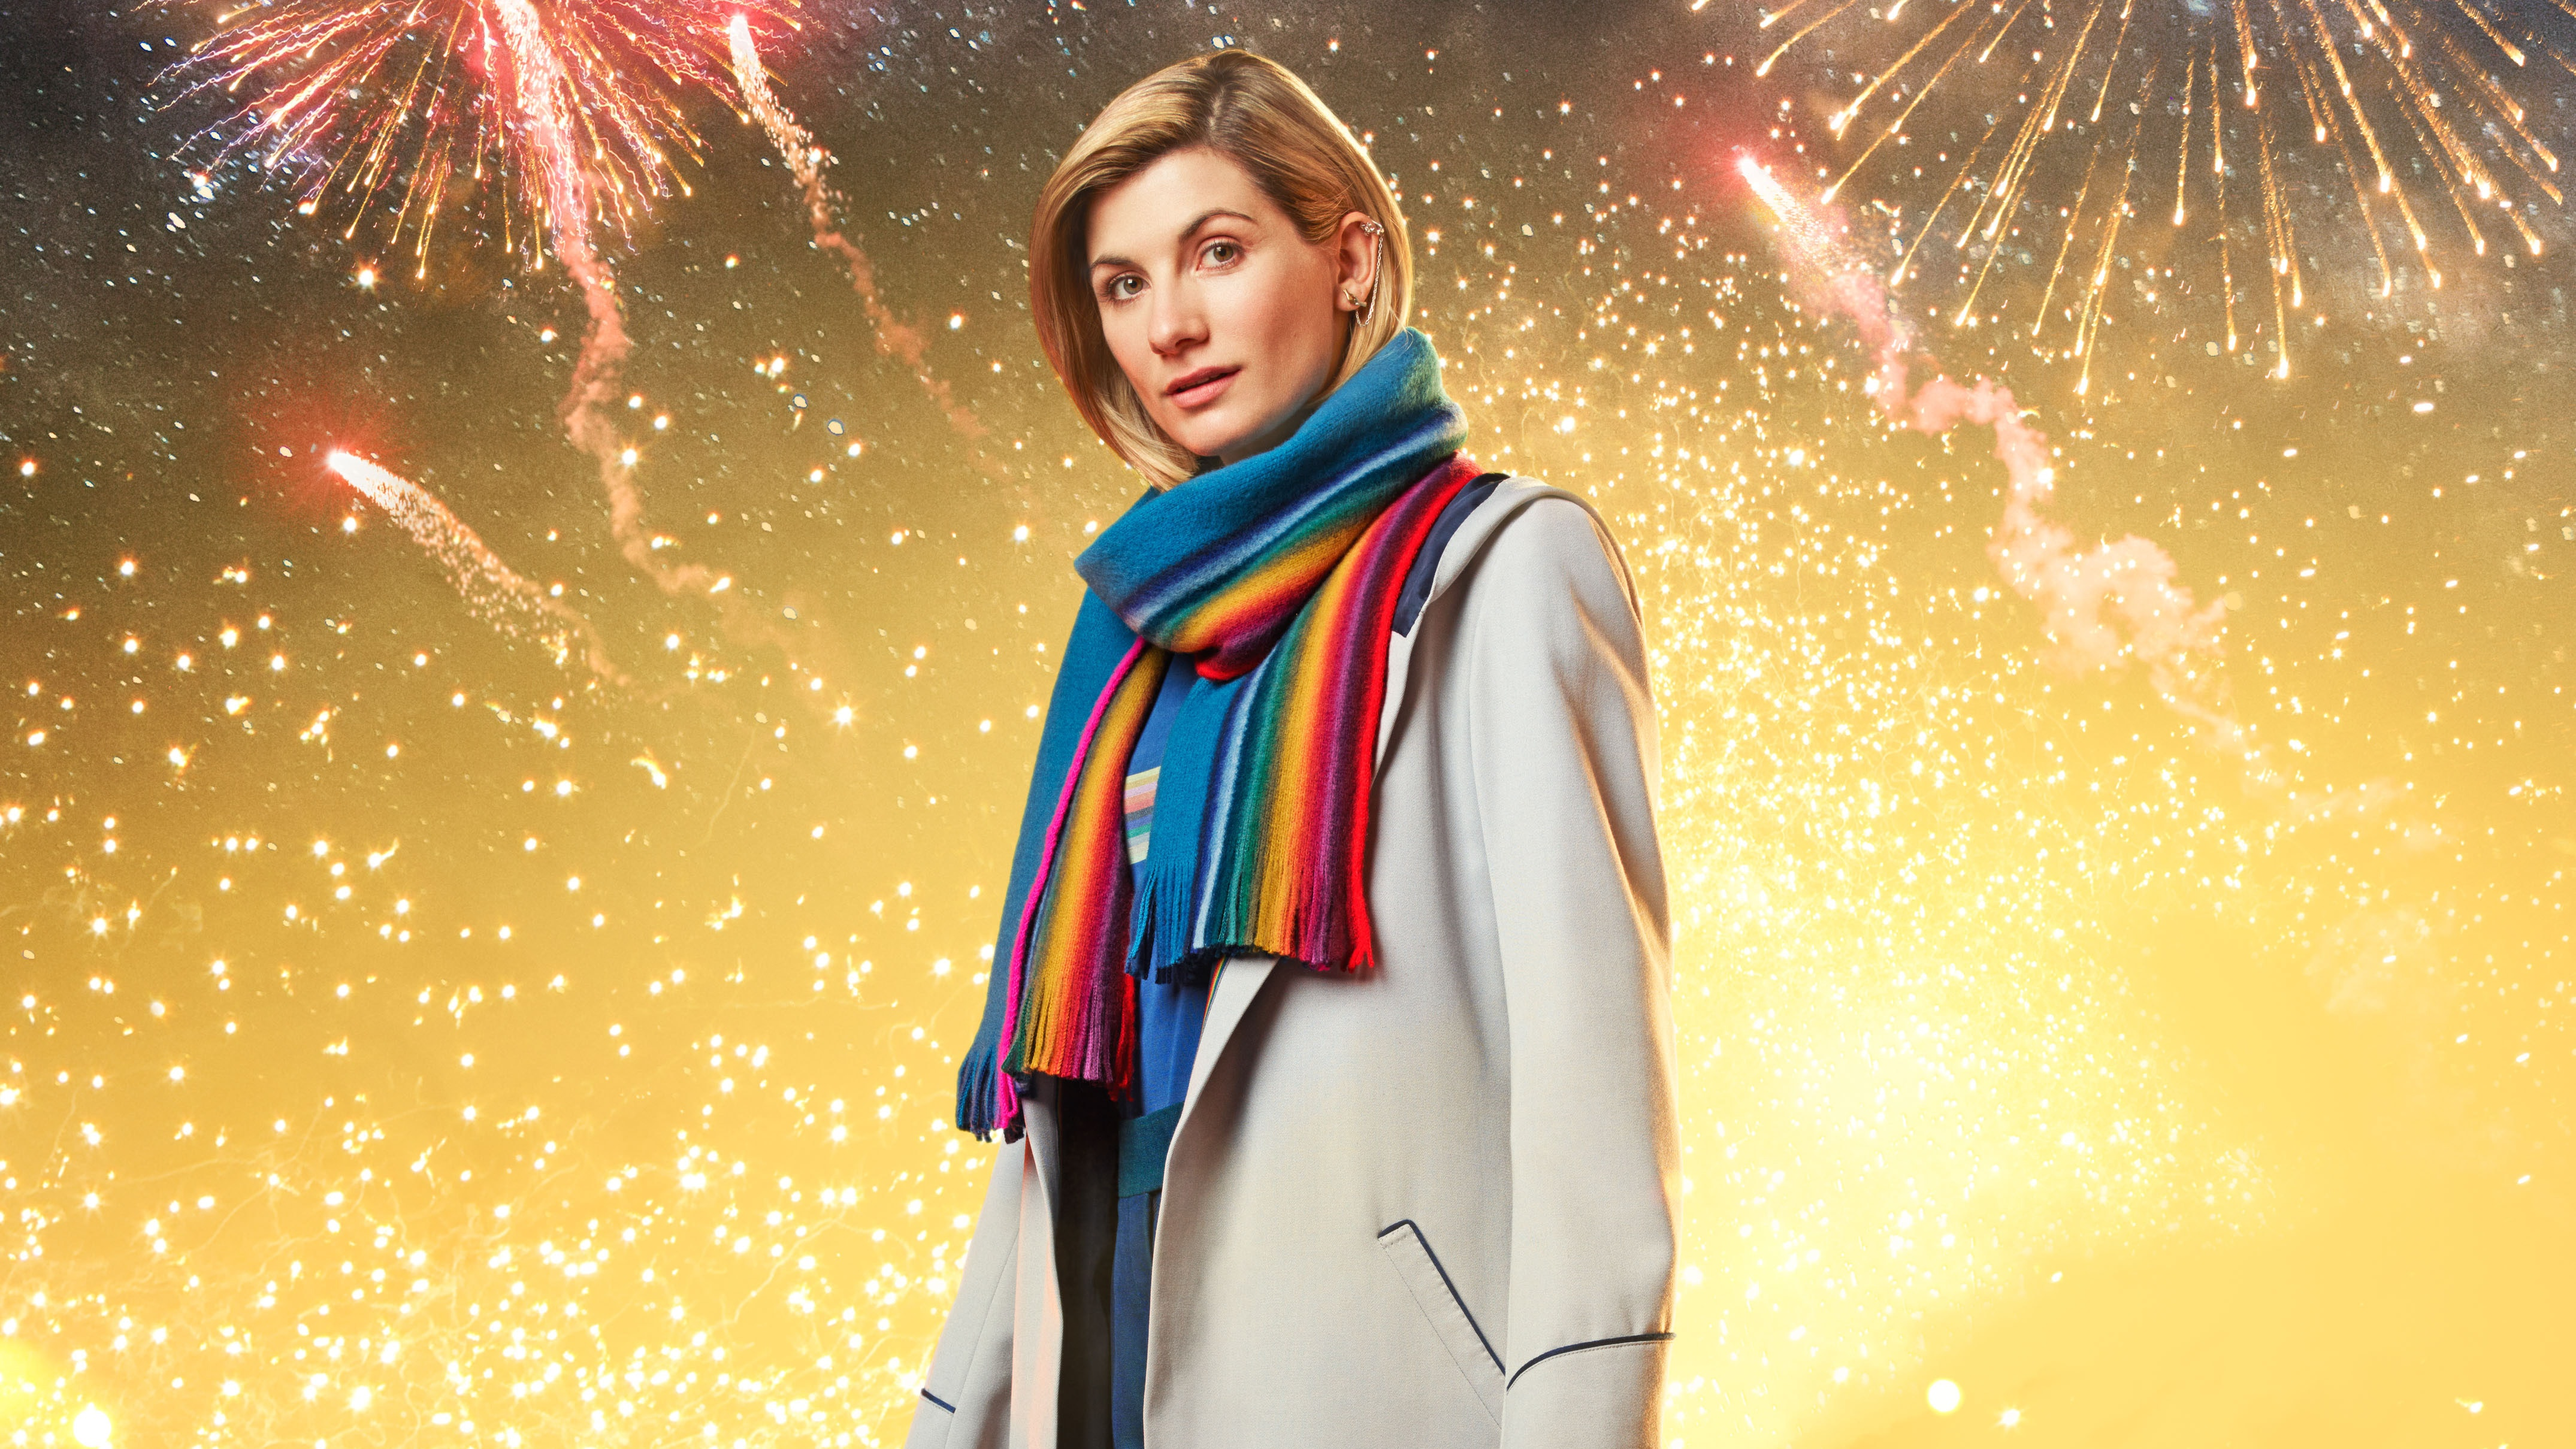 Watch Doctor Who 2020 Christmas Special Watch Doctor Who Christmas Special 2020 | Ncyddb.newyearhouse.site